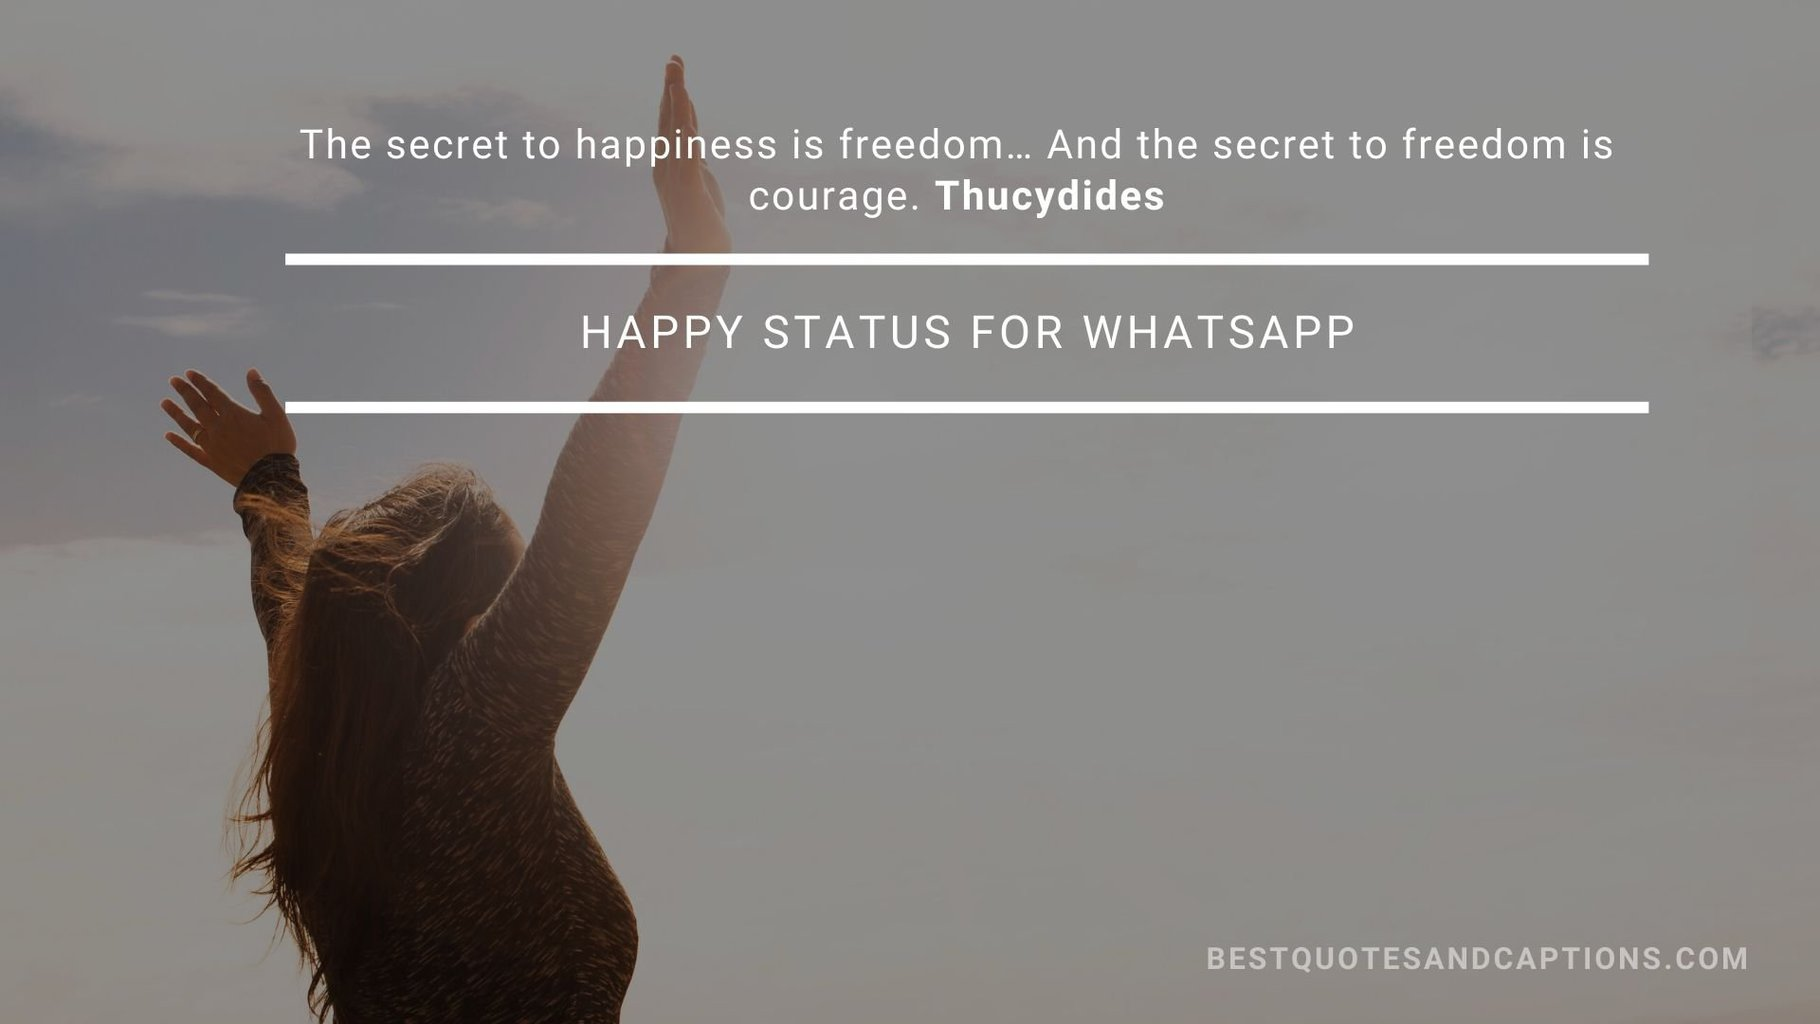 Happy status for whatsapp